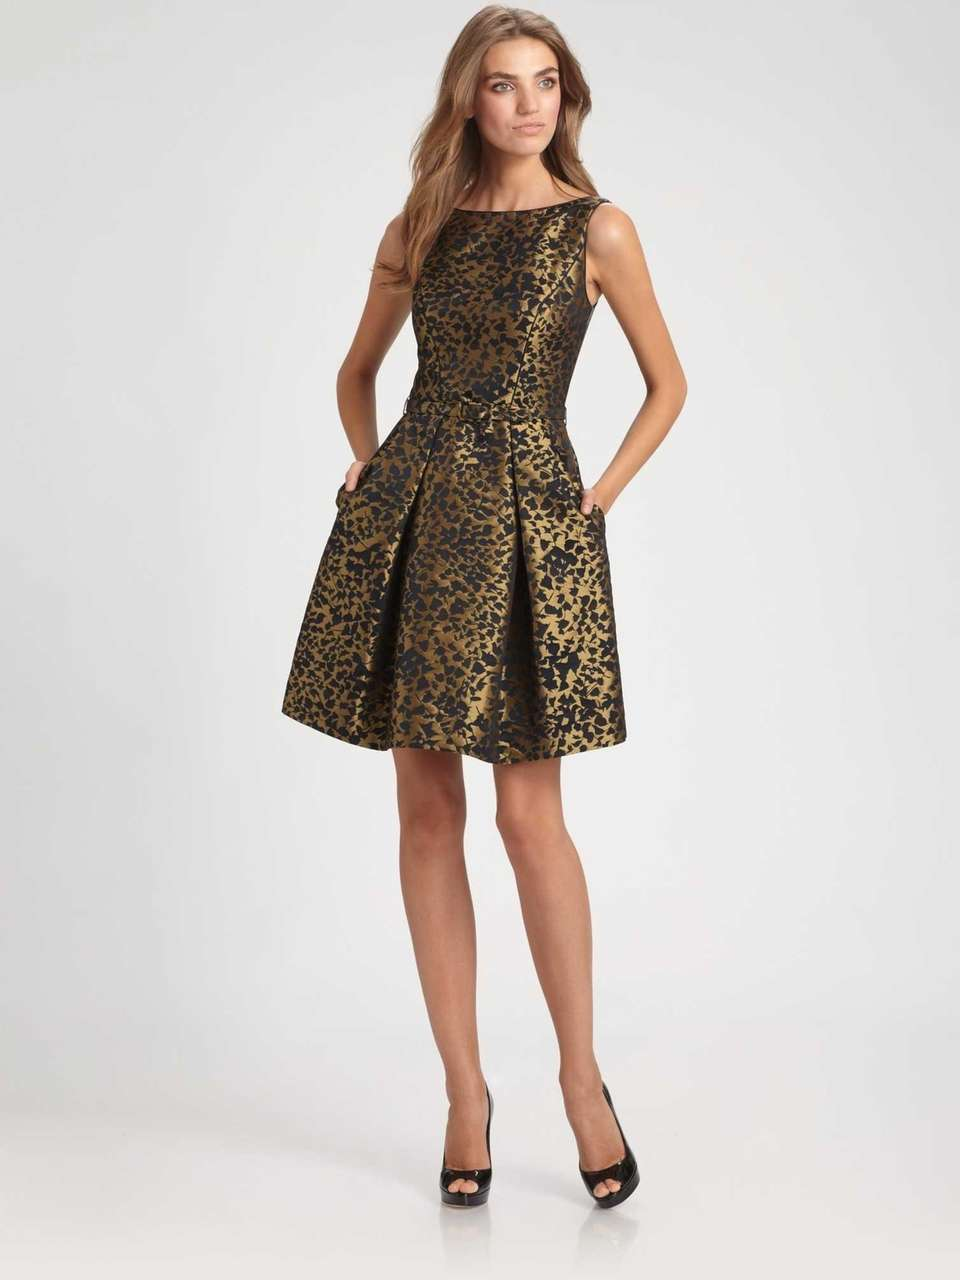 Lustrous brocade hints of old world Russian style